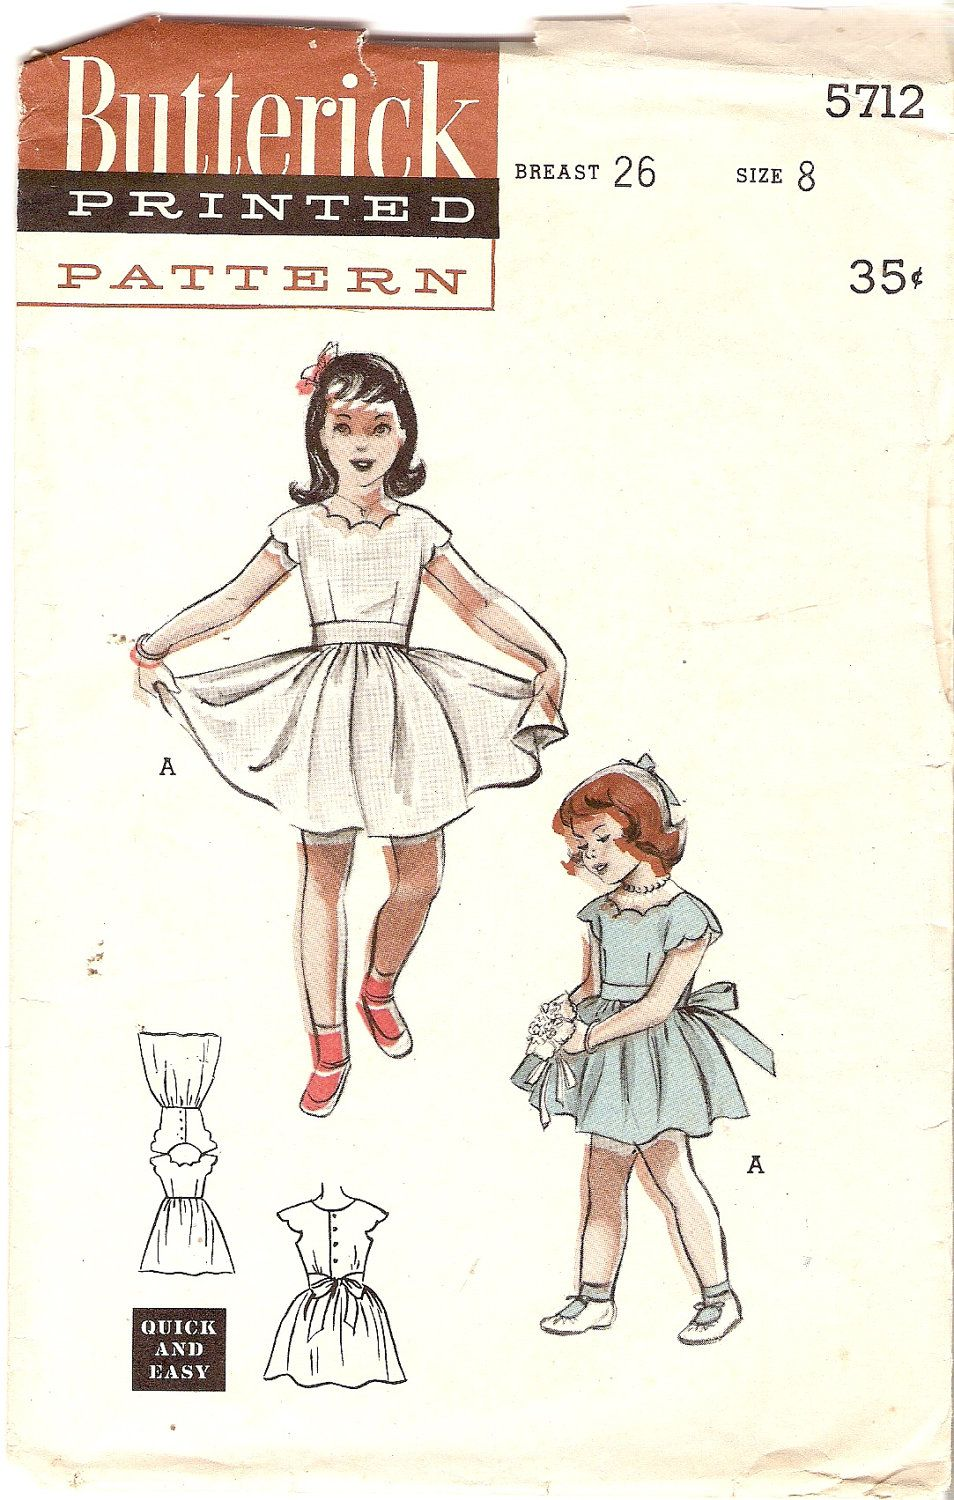 1950s Girls Dress Party Dress Scallop Neckline and Sleeves Flower Girl Dress Butterick 5712 size 8 Vintage Sewing Pattern. $15.00, via Etsy.